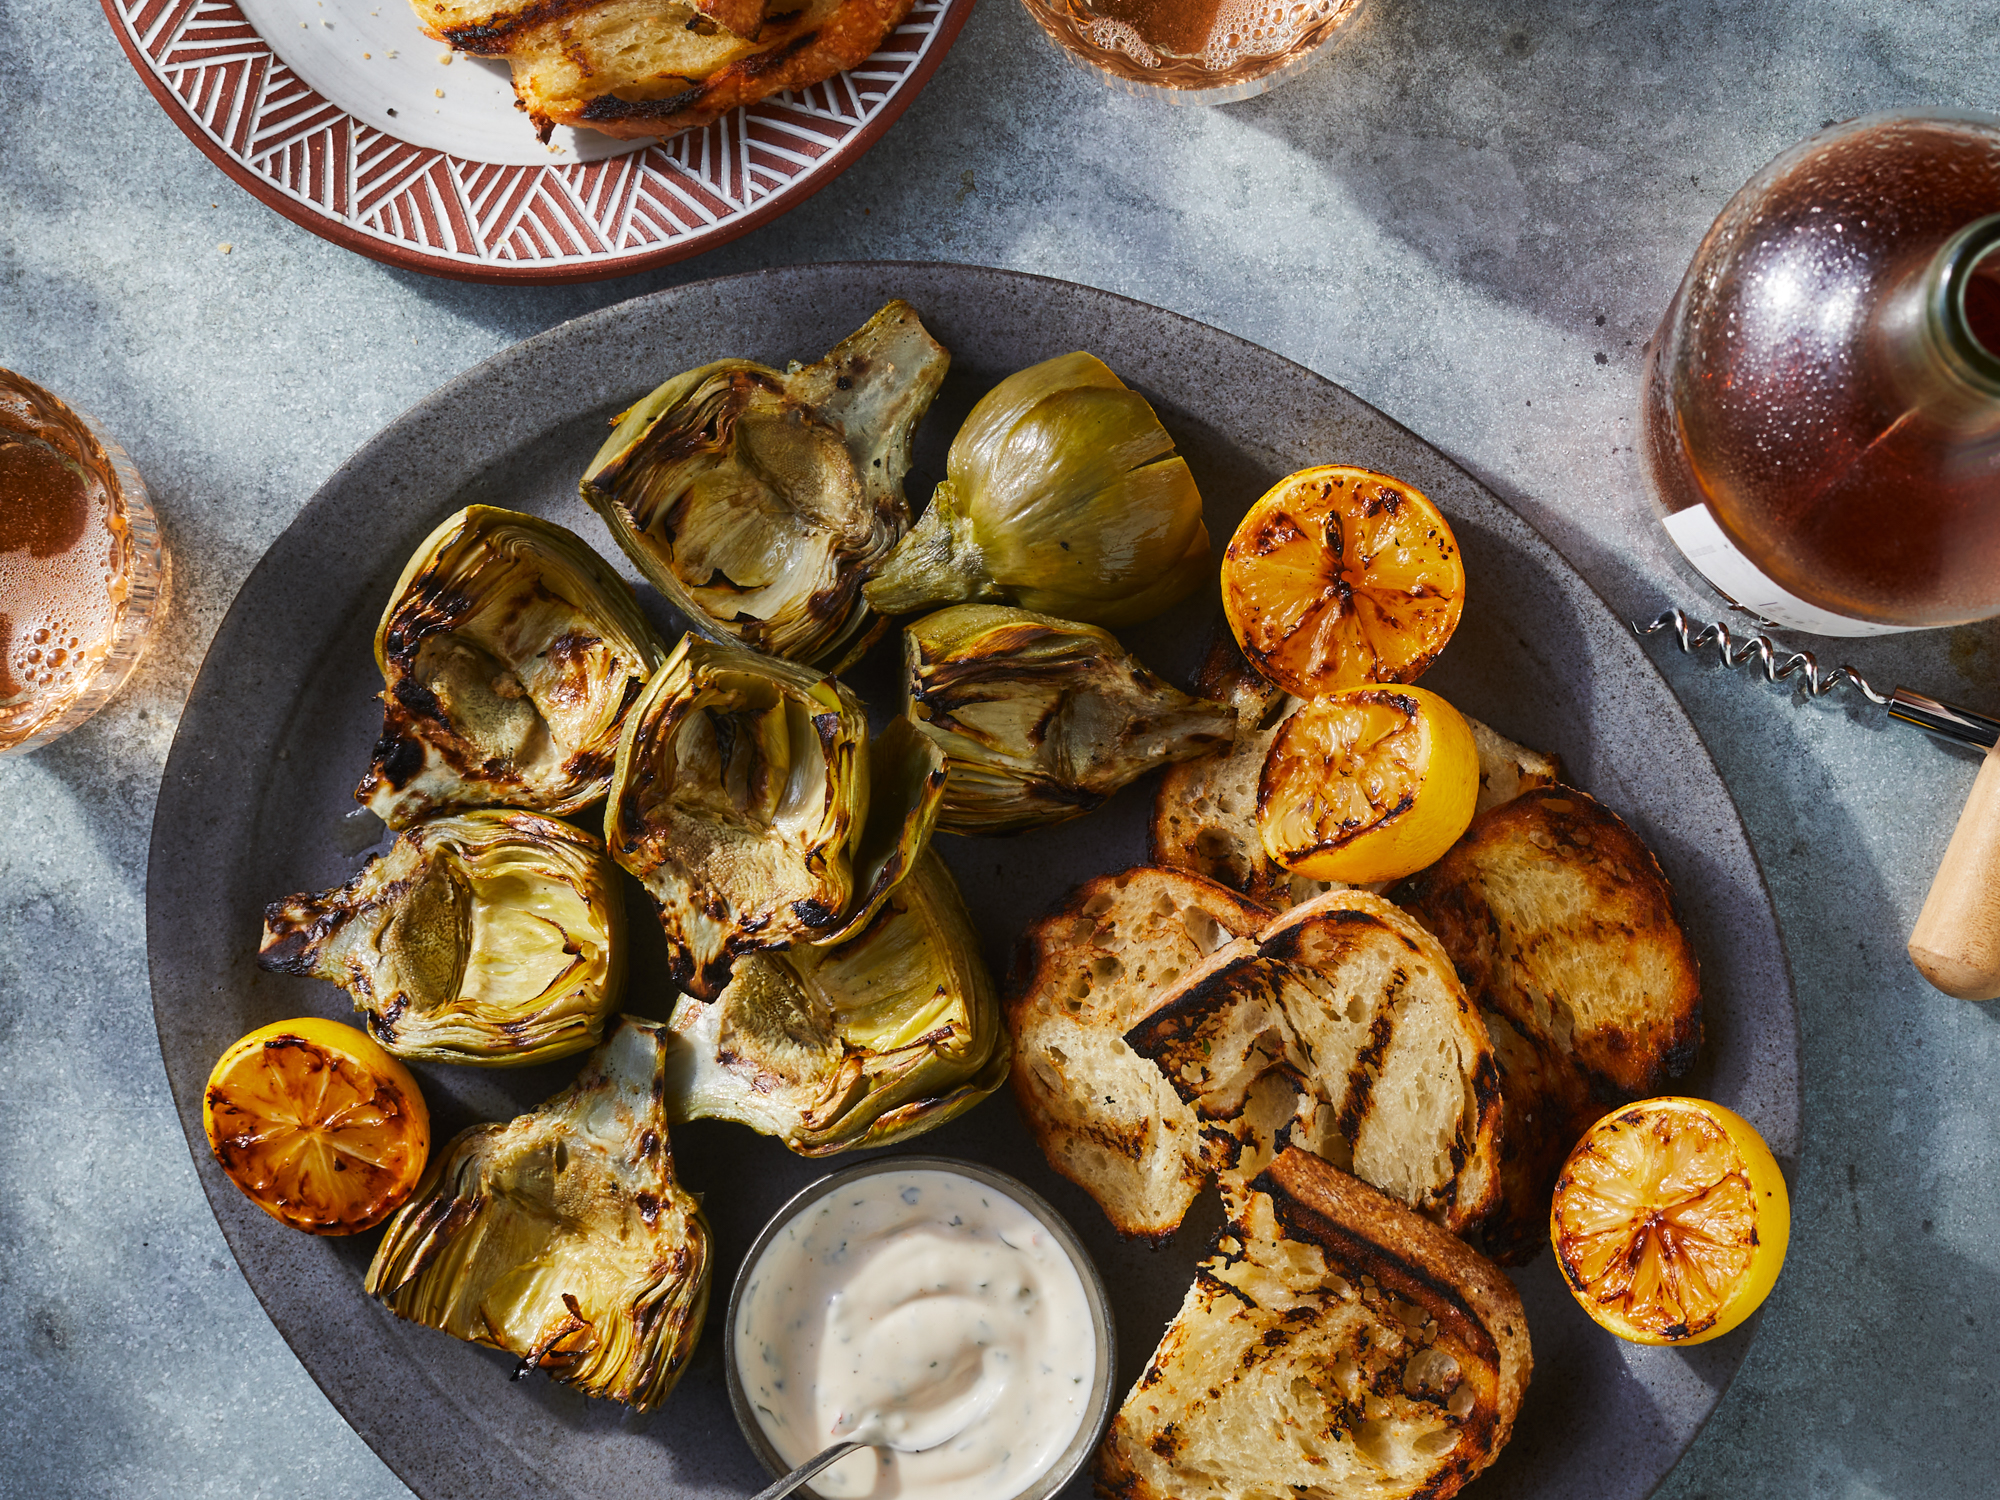 Grilled Artichokes with Herby Lemon Aioli